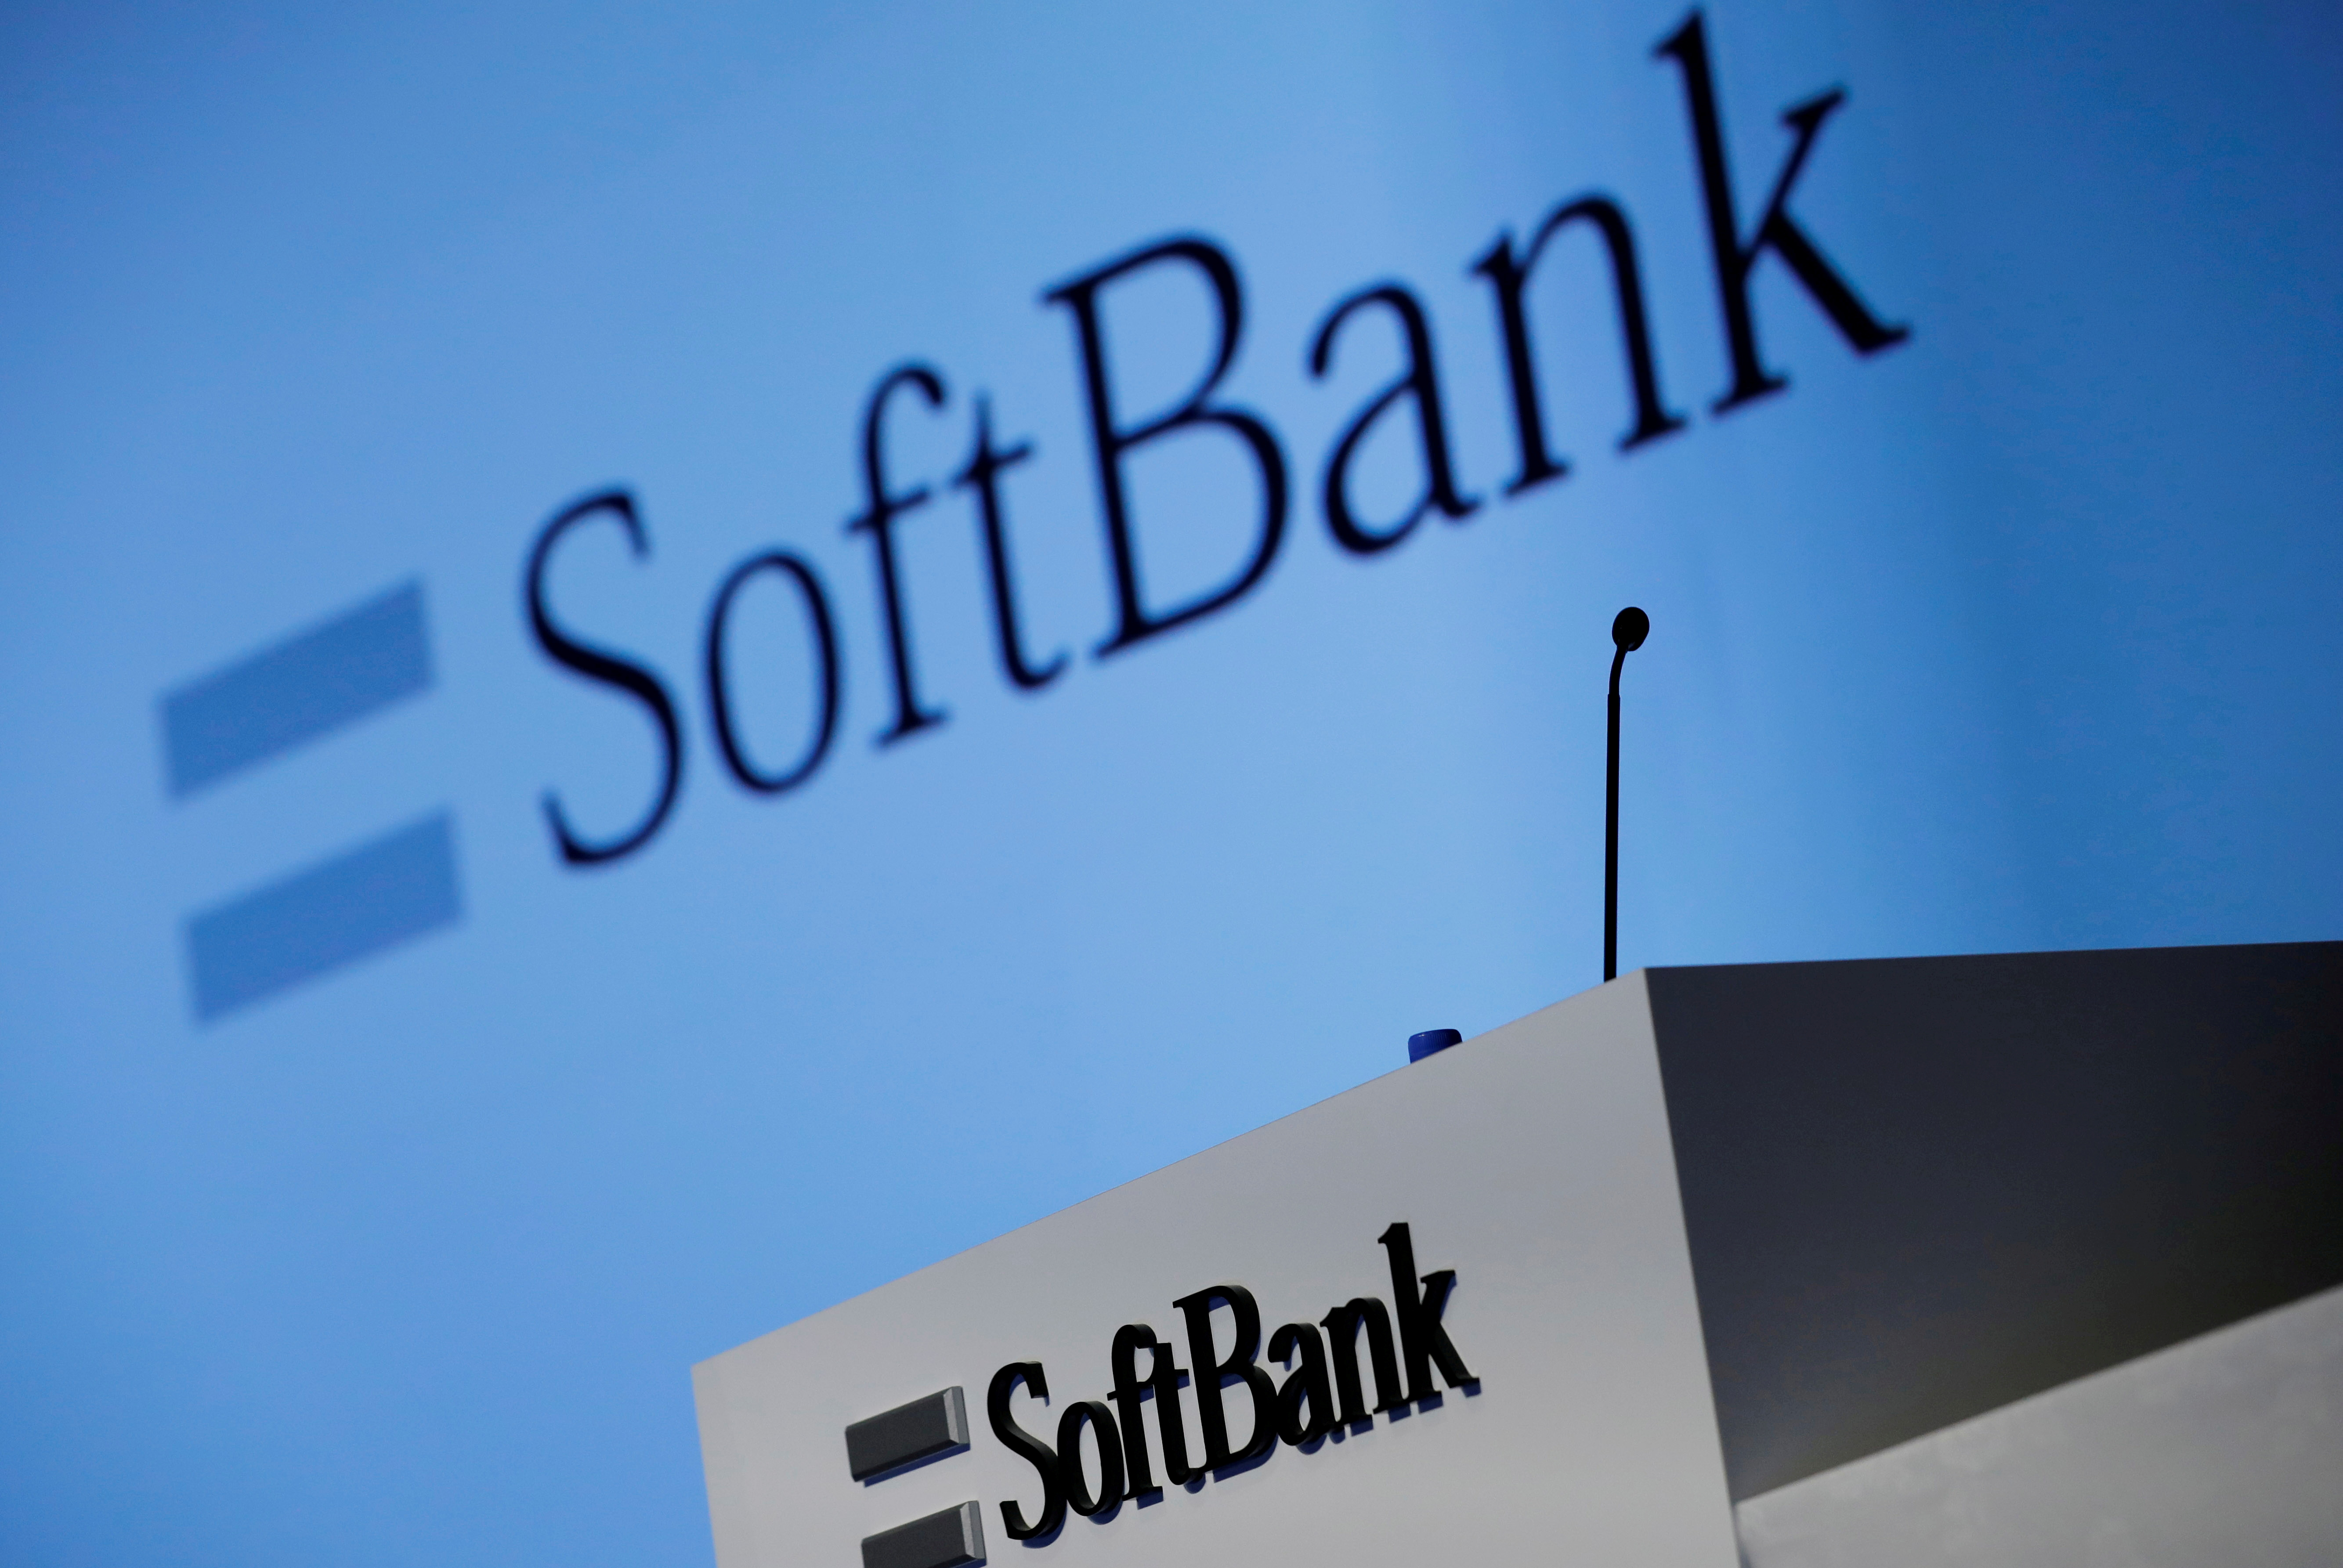 SoftBank Corp's logo is pictured at a news conference in Tokyo, Japan, February 4, 2021. REUTERS/Kim Kyung-Hoon/File Photo